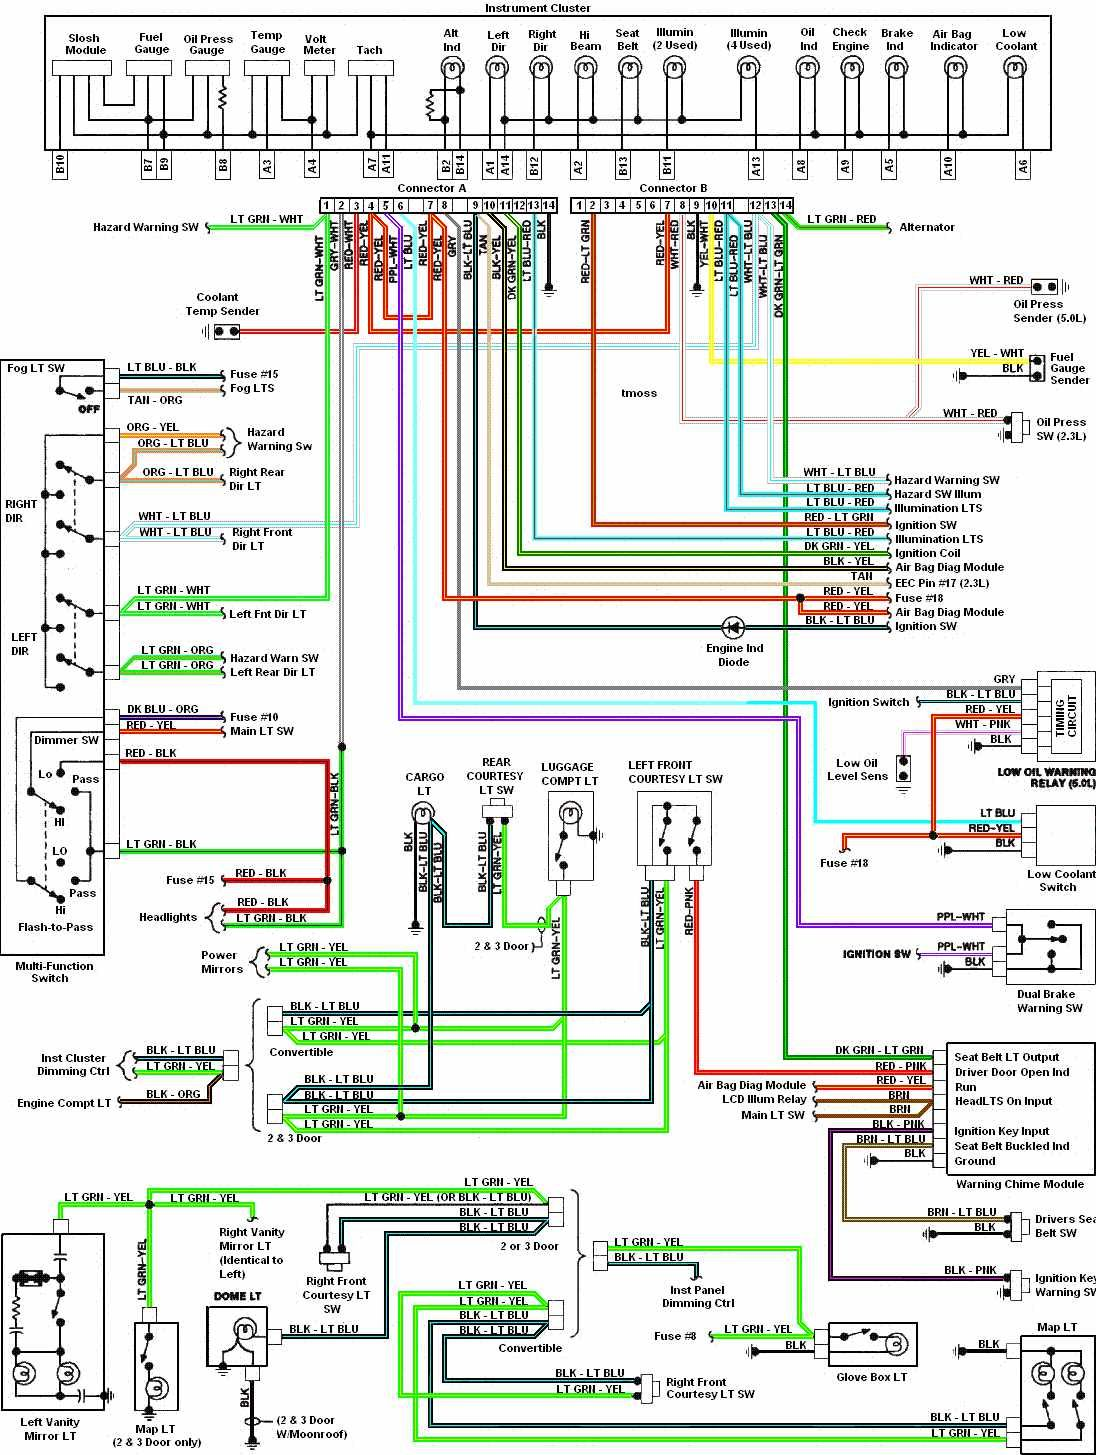 2008 ford mustang wiring diagram - wiring diagram system snail-locate -  snail-locate.ediliadesign.it  ediliadesign.it